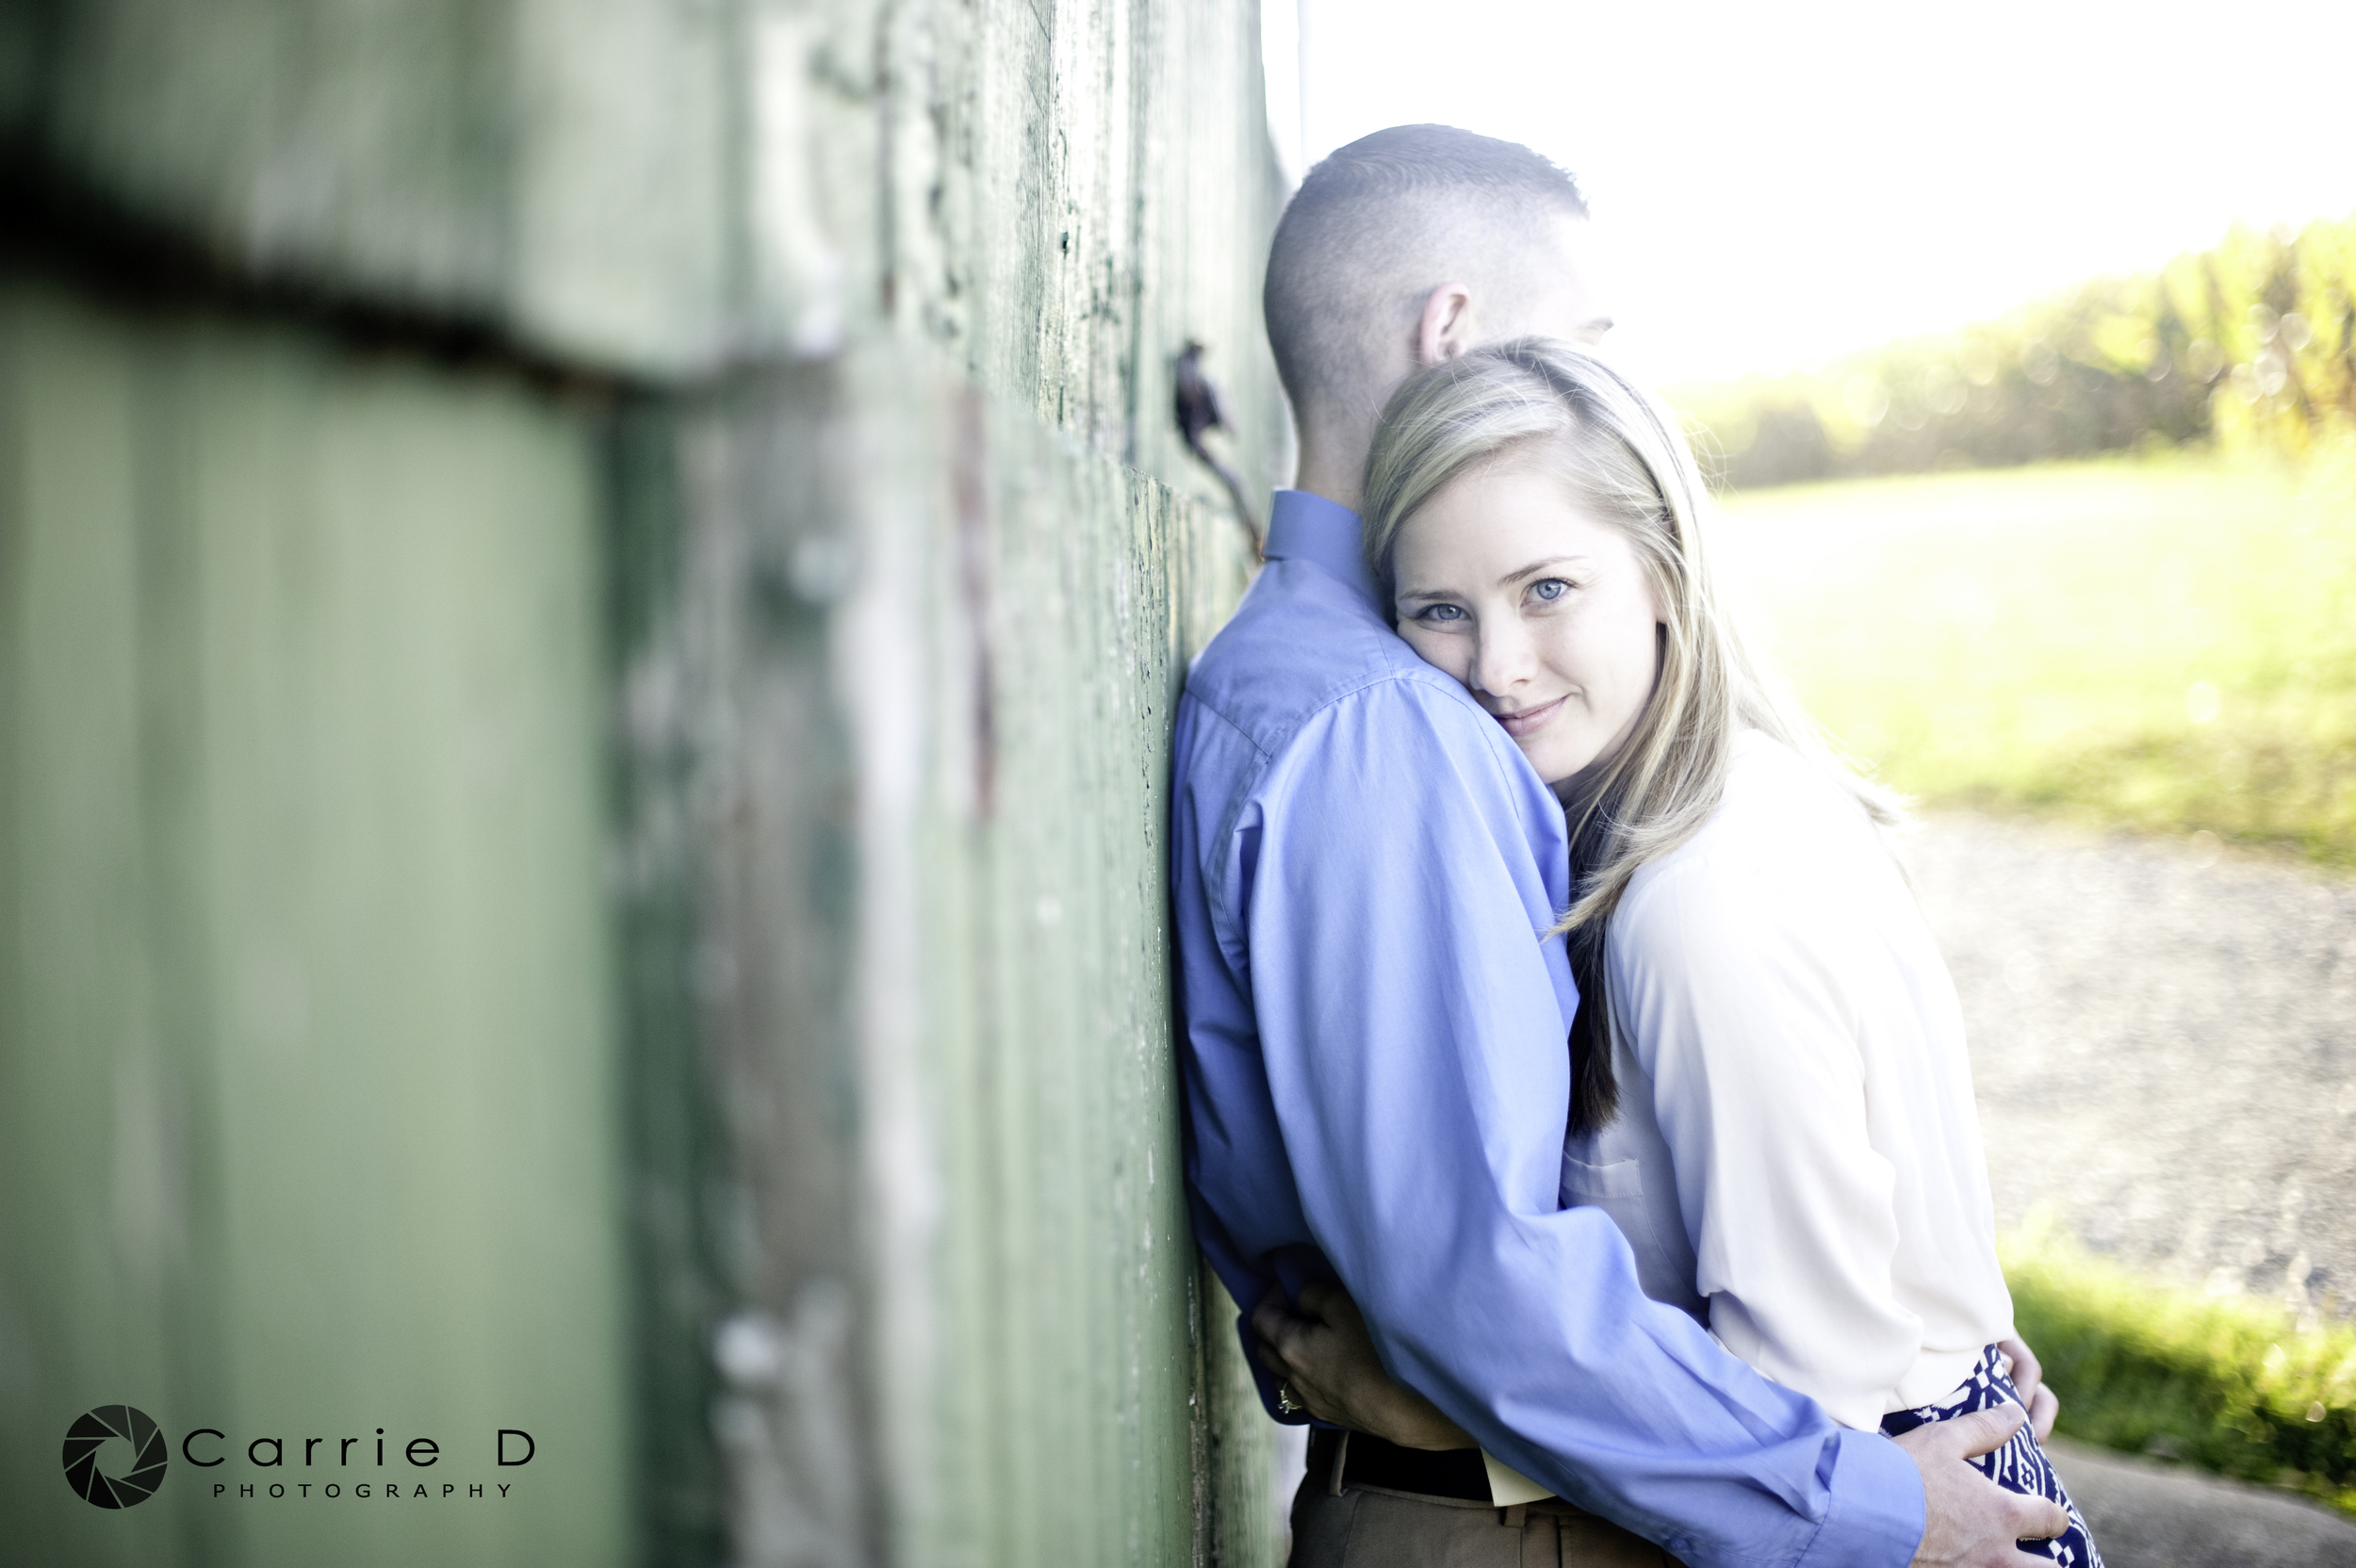 Harford County Photographer – Harford County Portrait Photographer – Harford County Engagement Photographer – Harford County Wedding Photographer – Harford County Couple Photographer – Harford County Natural Light Photographer – Harford County Lifestyle Photographer – Harford County Natural Light Portrait Photographer – Harford County Save the Date Photographer - Maryland Photographer – Maryland Portrait Photographer – Maryland Engagement Photographer – Maryland Wedding Photographer – Maryland Couple Photographer – Maryland Natural Light Photographer – Maryland Lifestyle Photographer – Maryland Natural Light Portrait Photographer – Maryland Save the Date PhotographerBlair Engagement_DSC_3212B